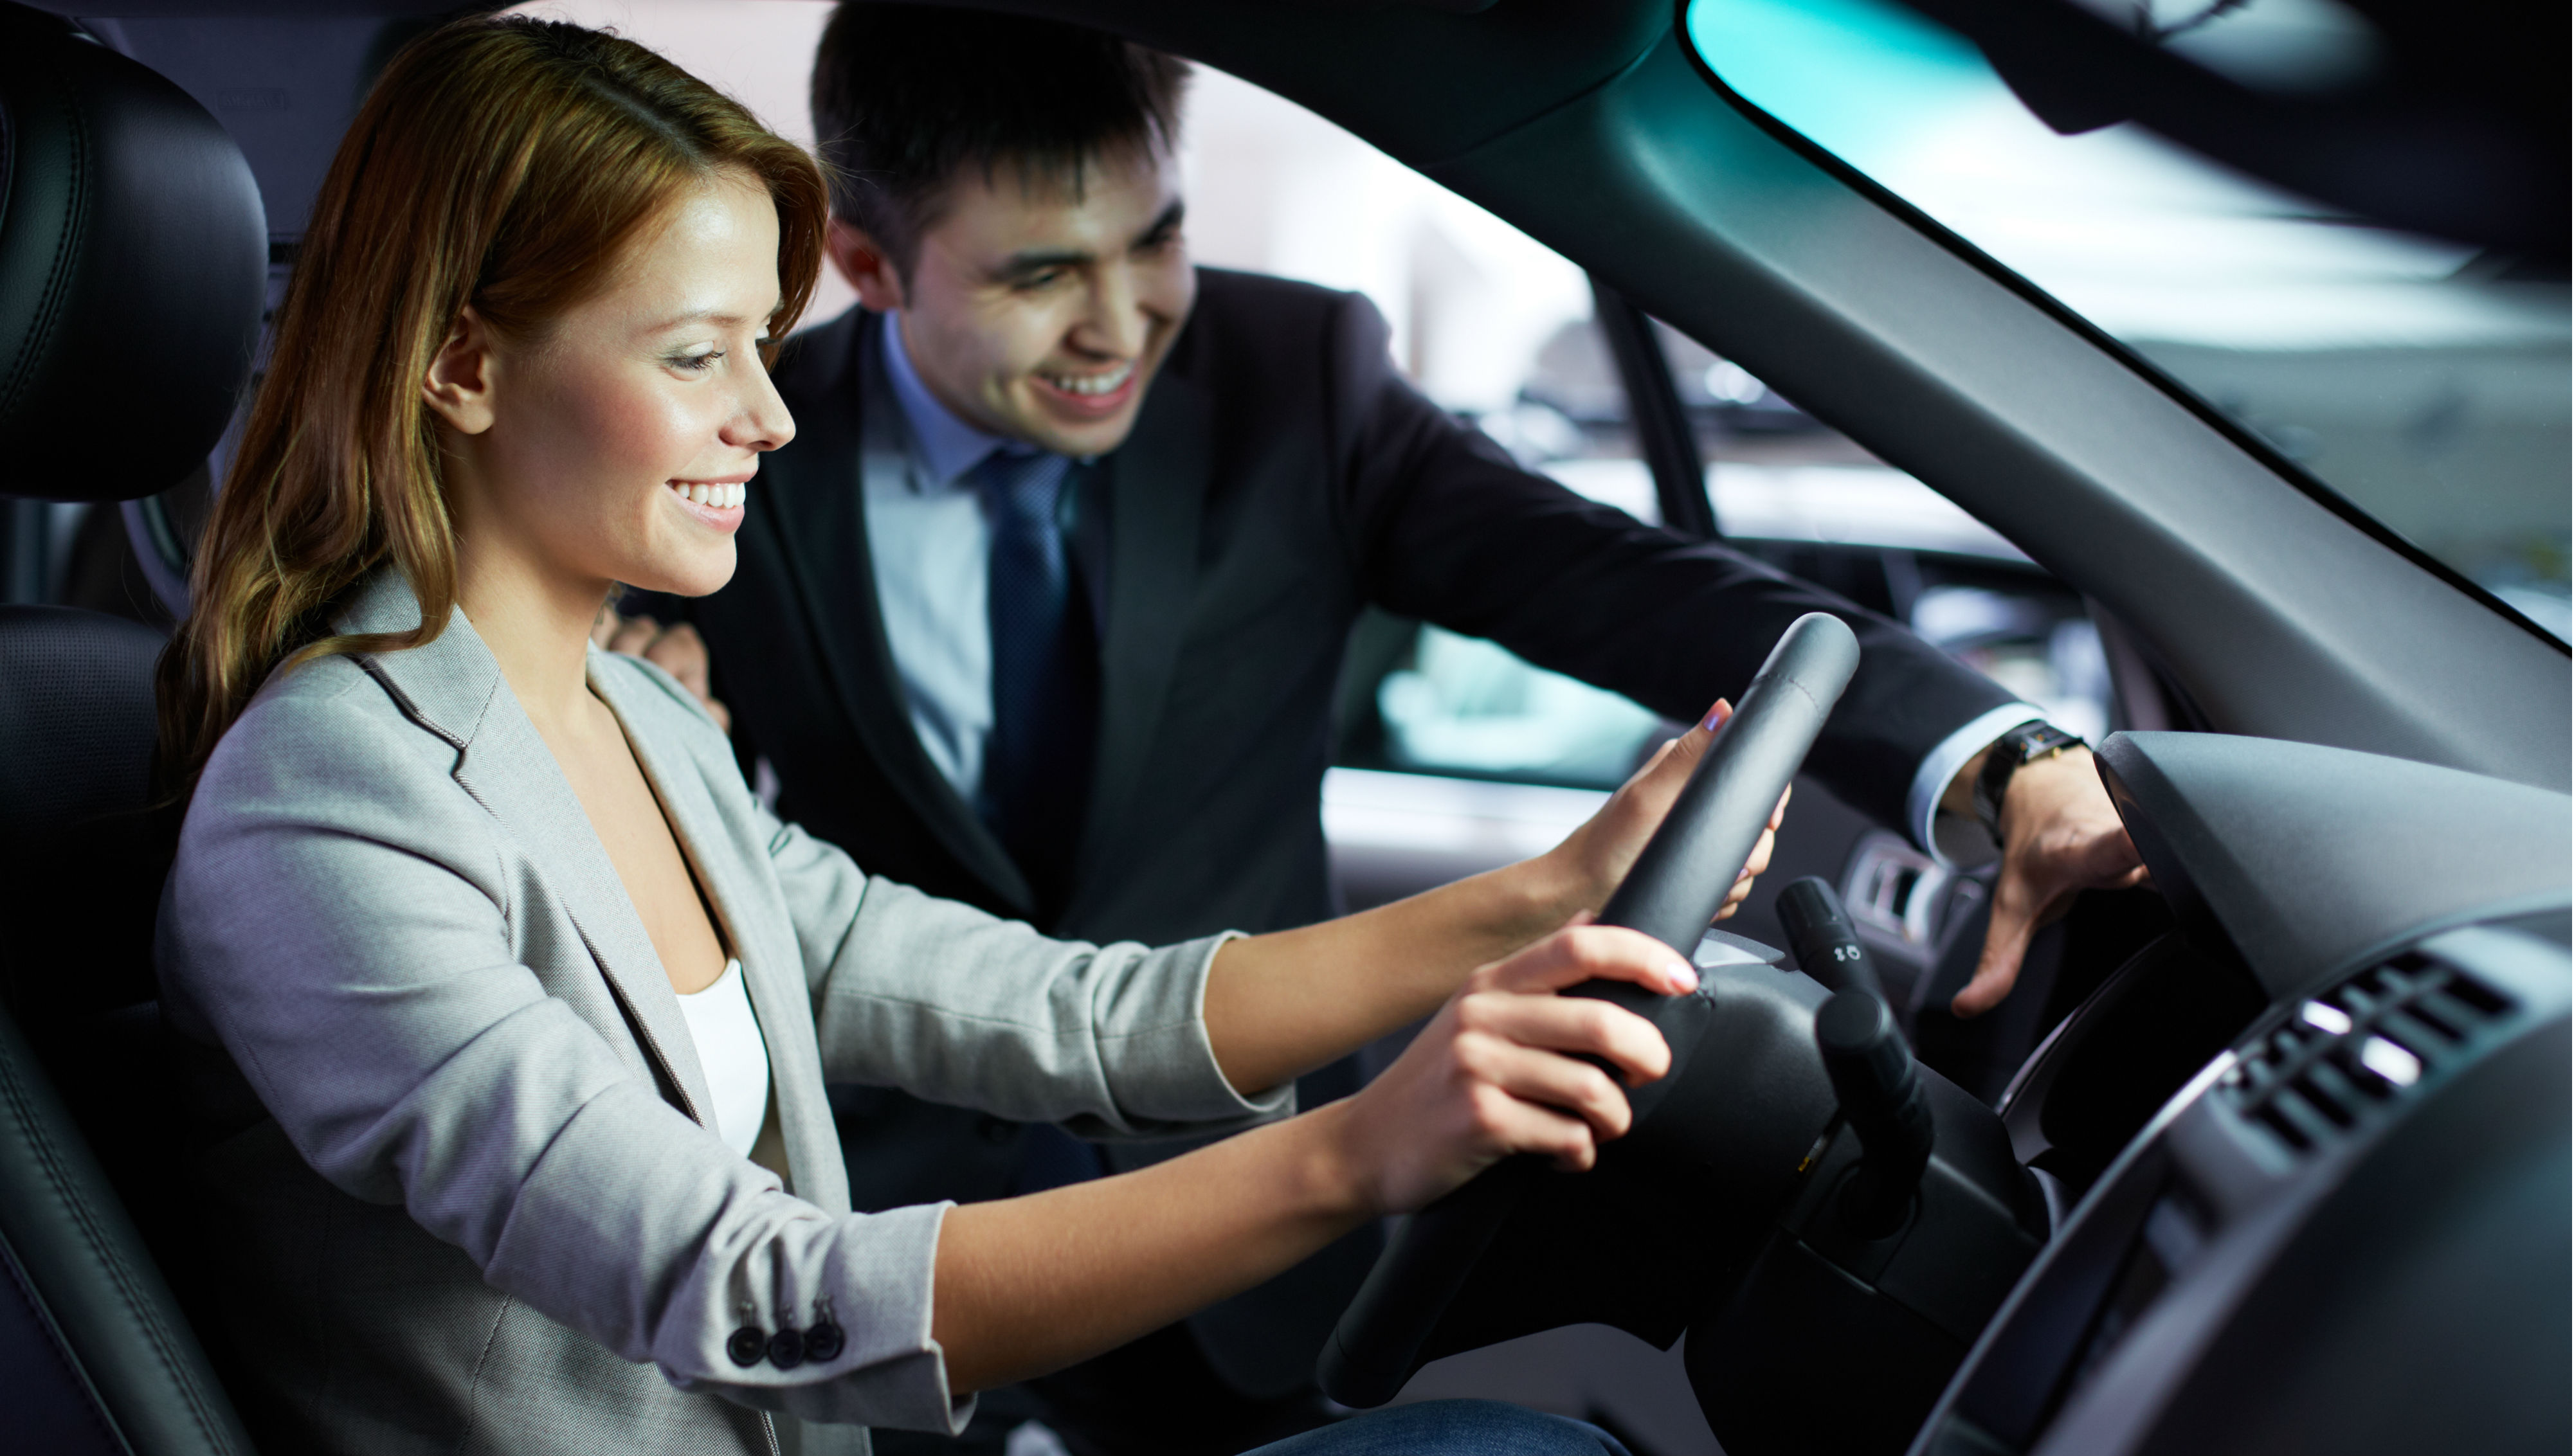 What to ask during a test drive